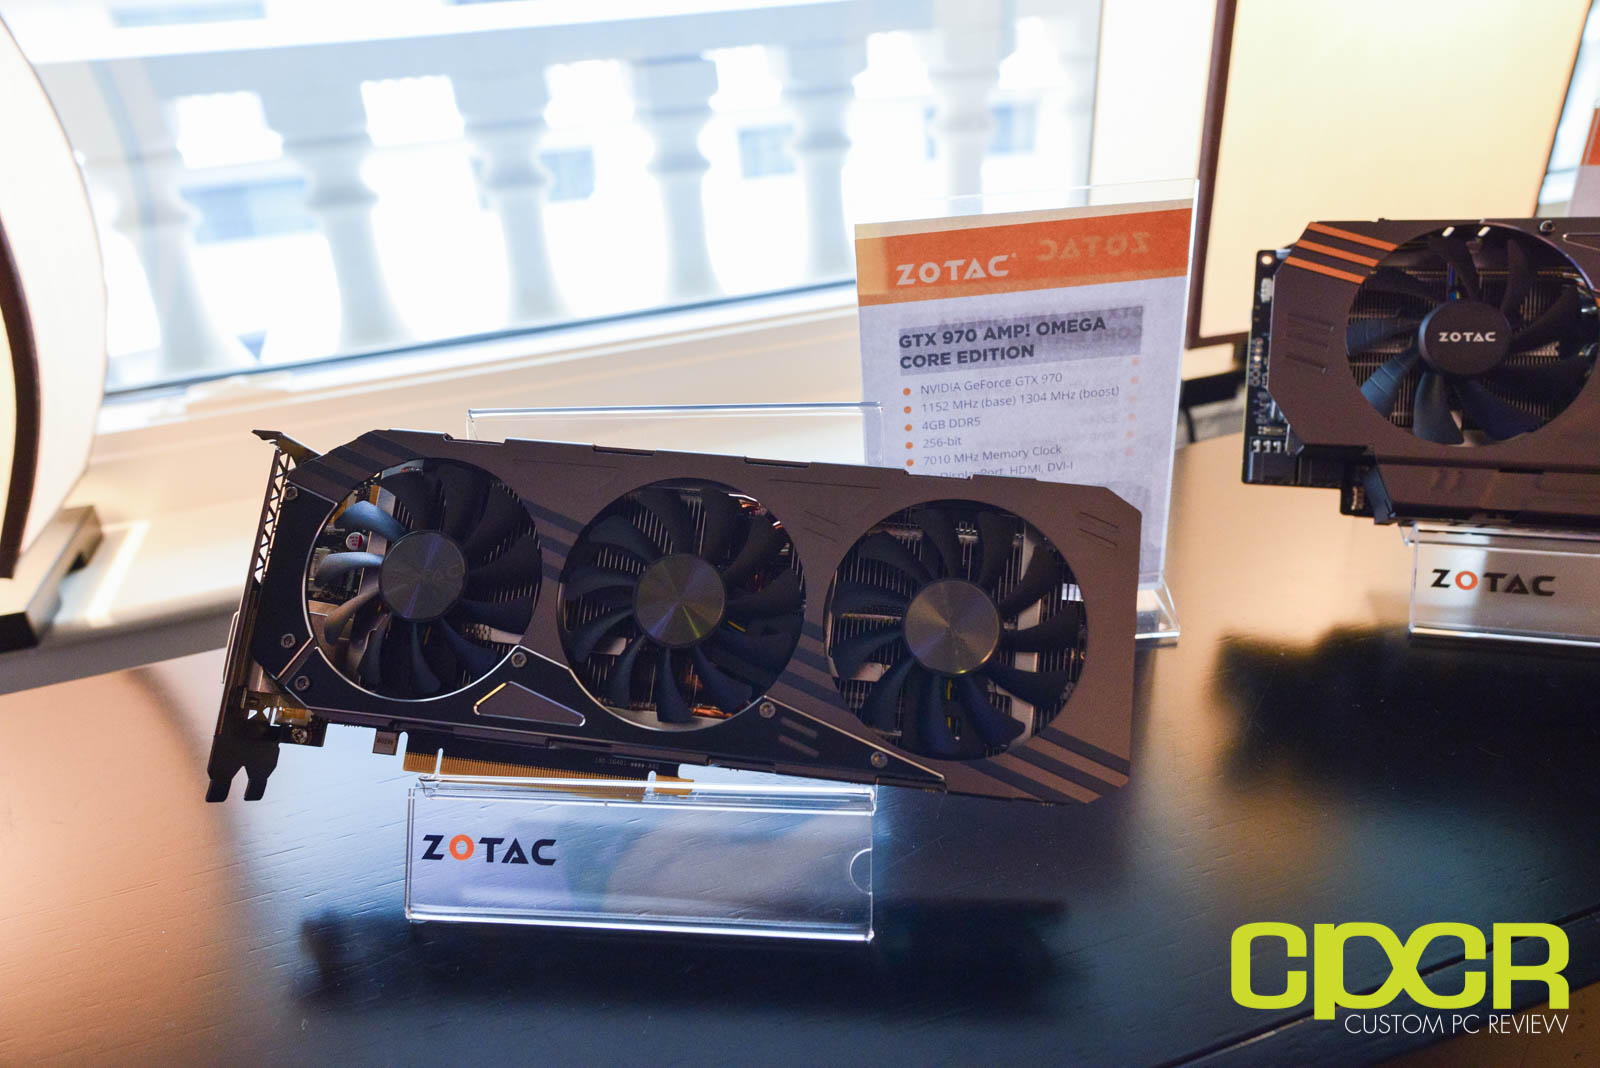 zotac-gtx-970-core-edition-ces-2015-custom-pc-review-10